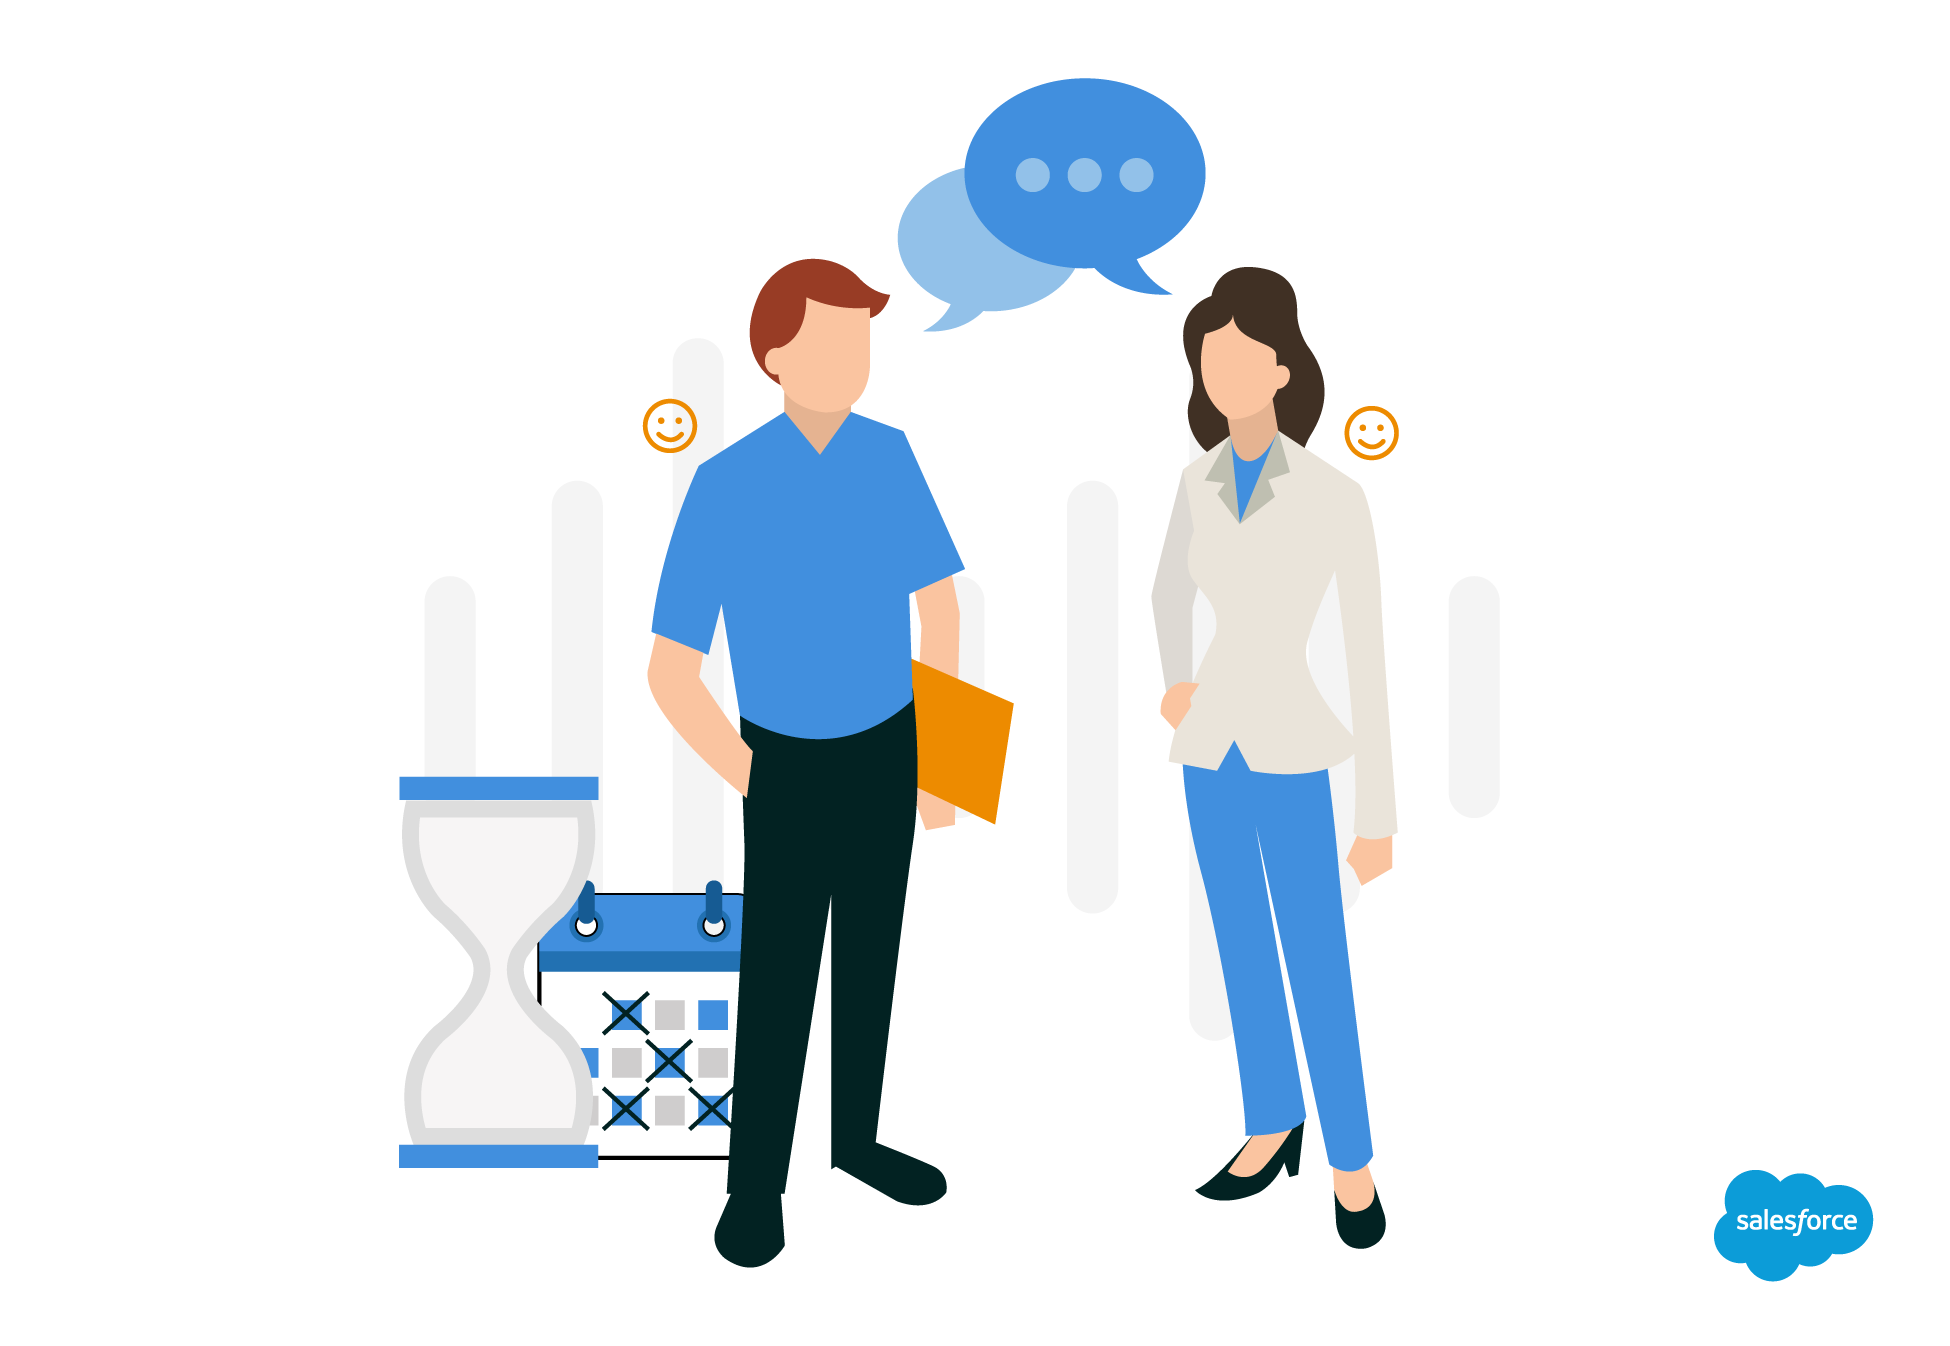 spend more time with customers